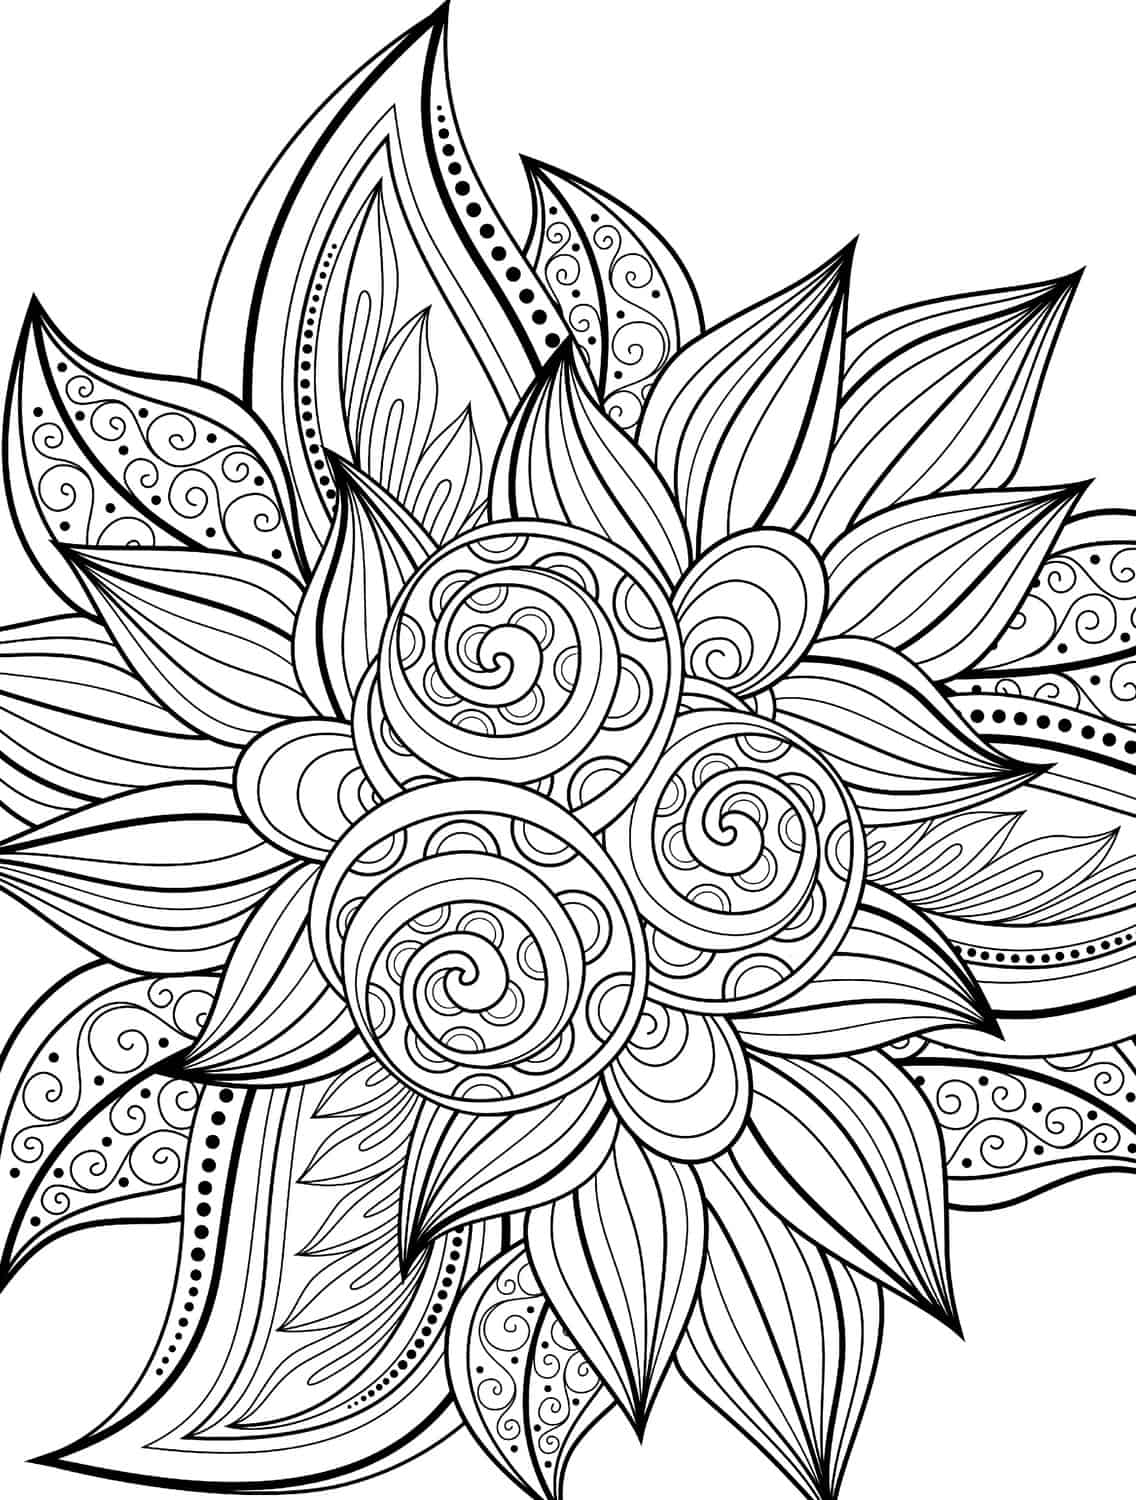 10 Free Printable Holiday Adult Coloring Pages Free Printable Coloring Pages Adults